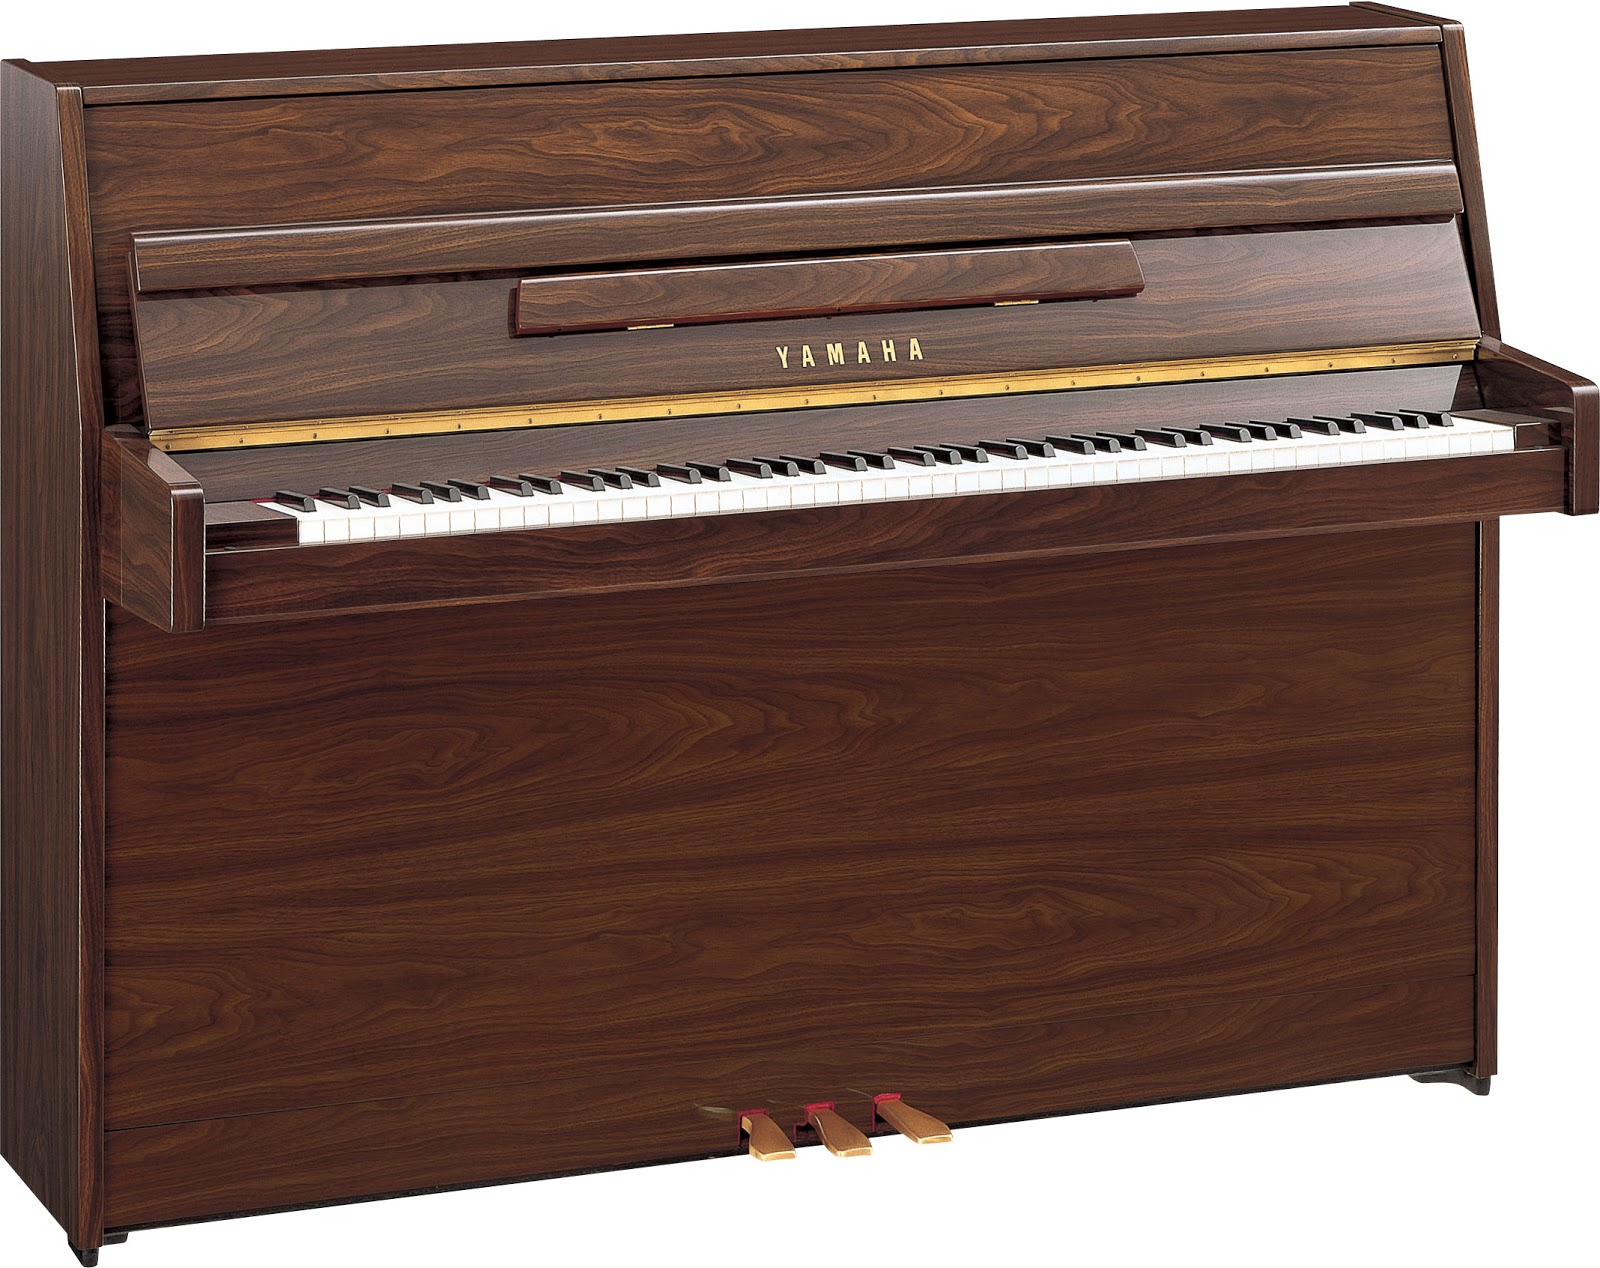 Academy awards picture for Yamaha piano dealer near me